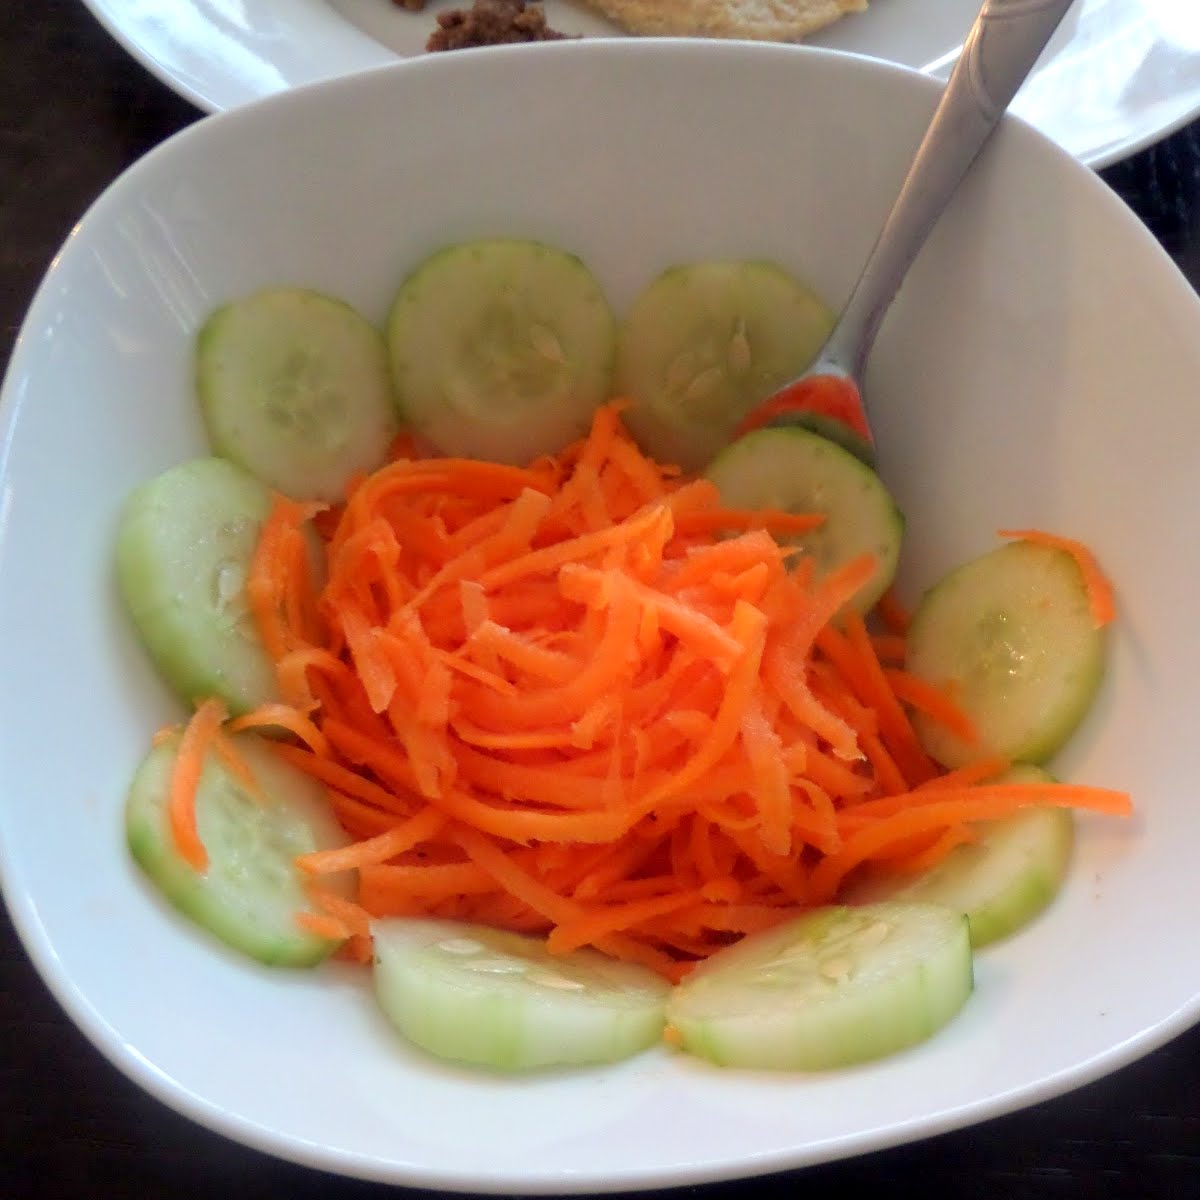 Simple Carrot and Cucumber Salad | Joybee, What's for Dinner?